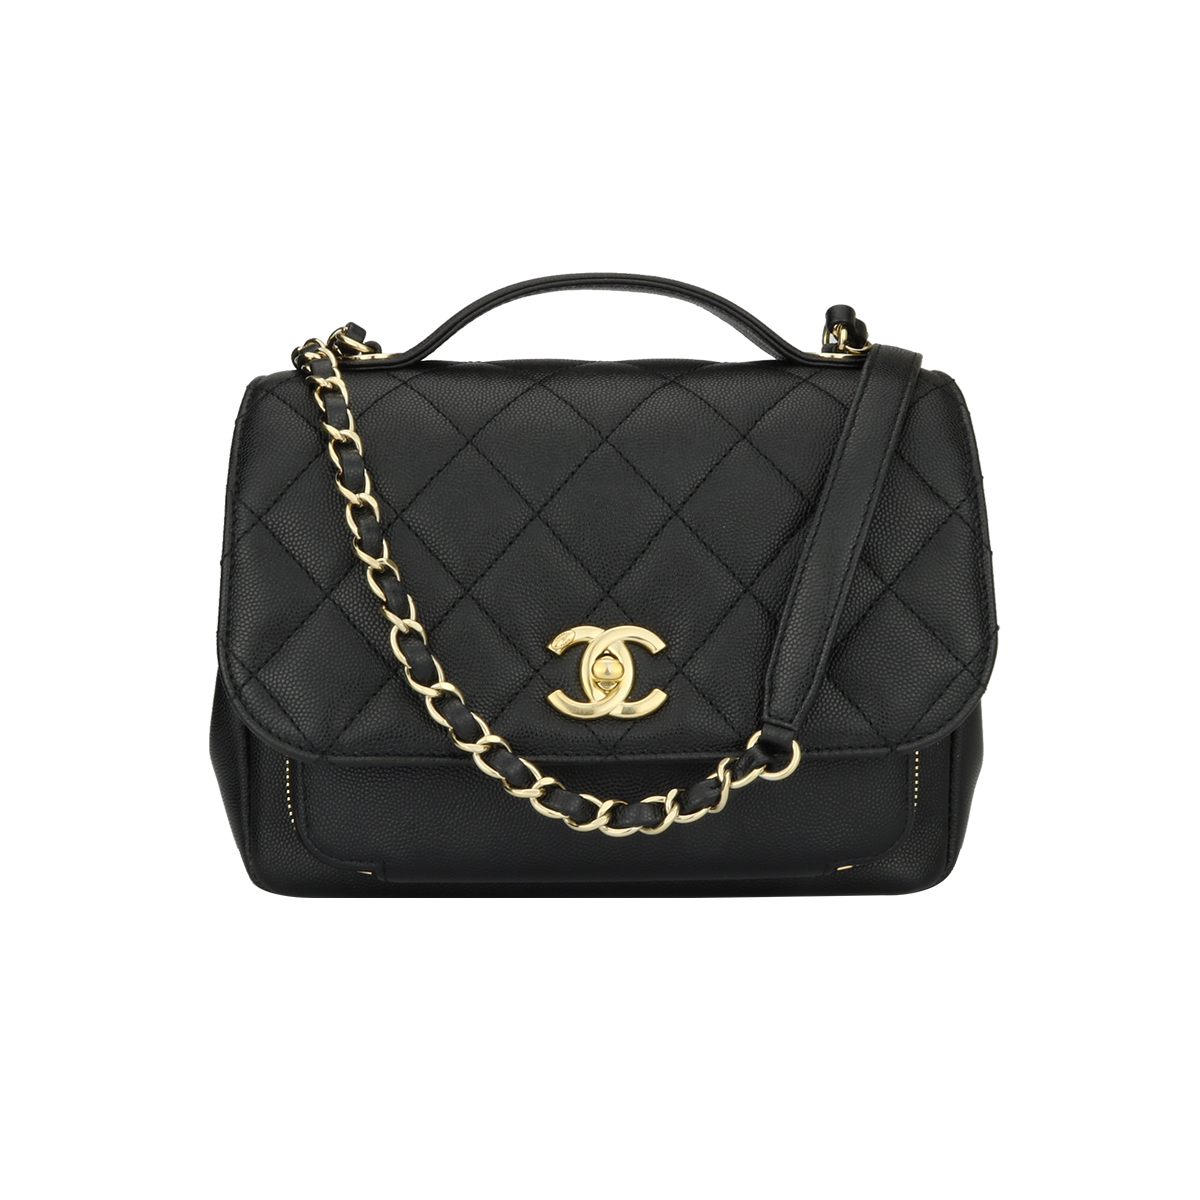 878a216d309d Home/Chanel/CHANEL Business Affinity Medium Black Caviar Champagne Hardware  2017. ; 